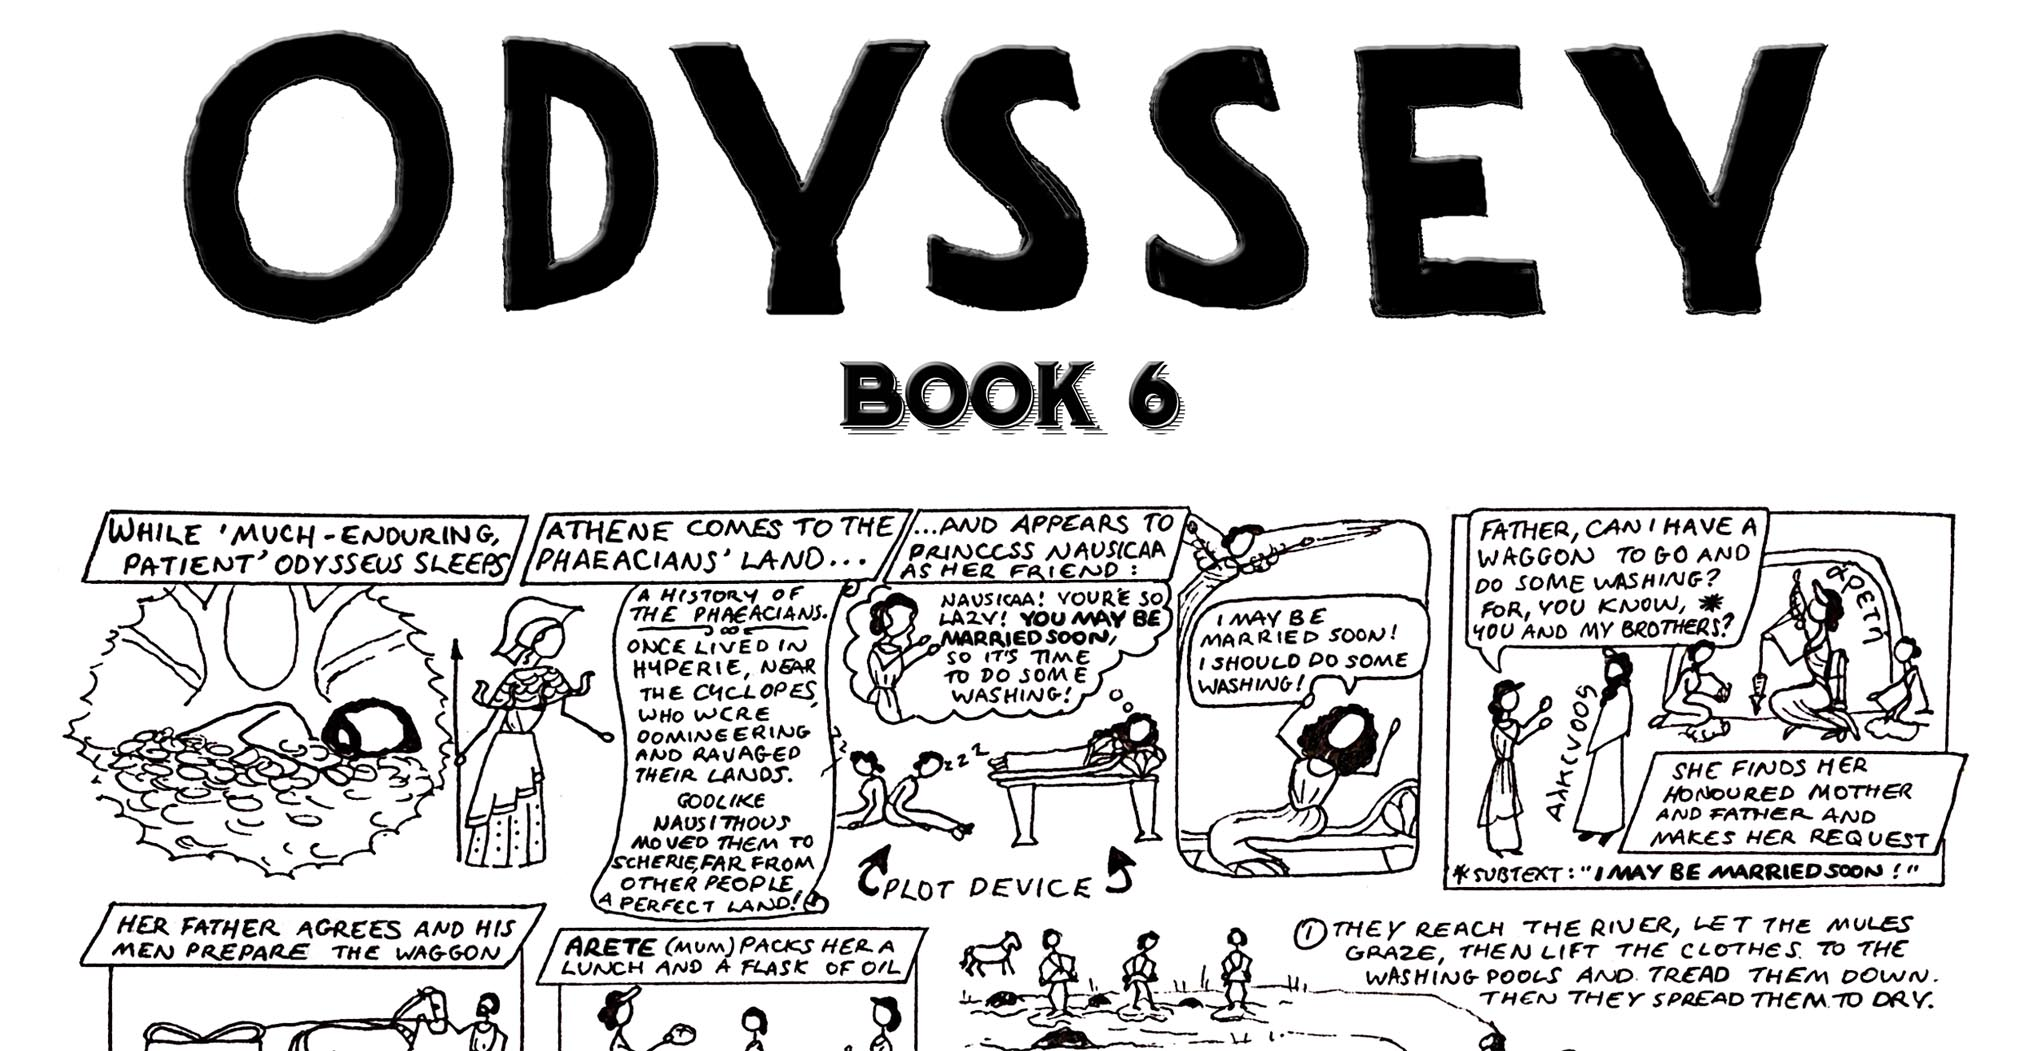 epic similes in the odyssey There are several similes in book 5 of the odysseyin line 14 of book 5, athena says that odysseus was as kindly as a father to his children as a leader of ithaca later, as odysseus is in a.